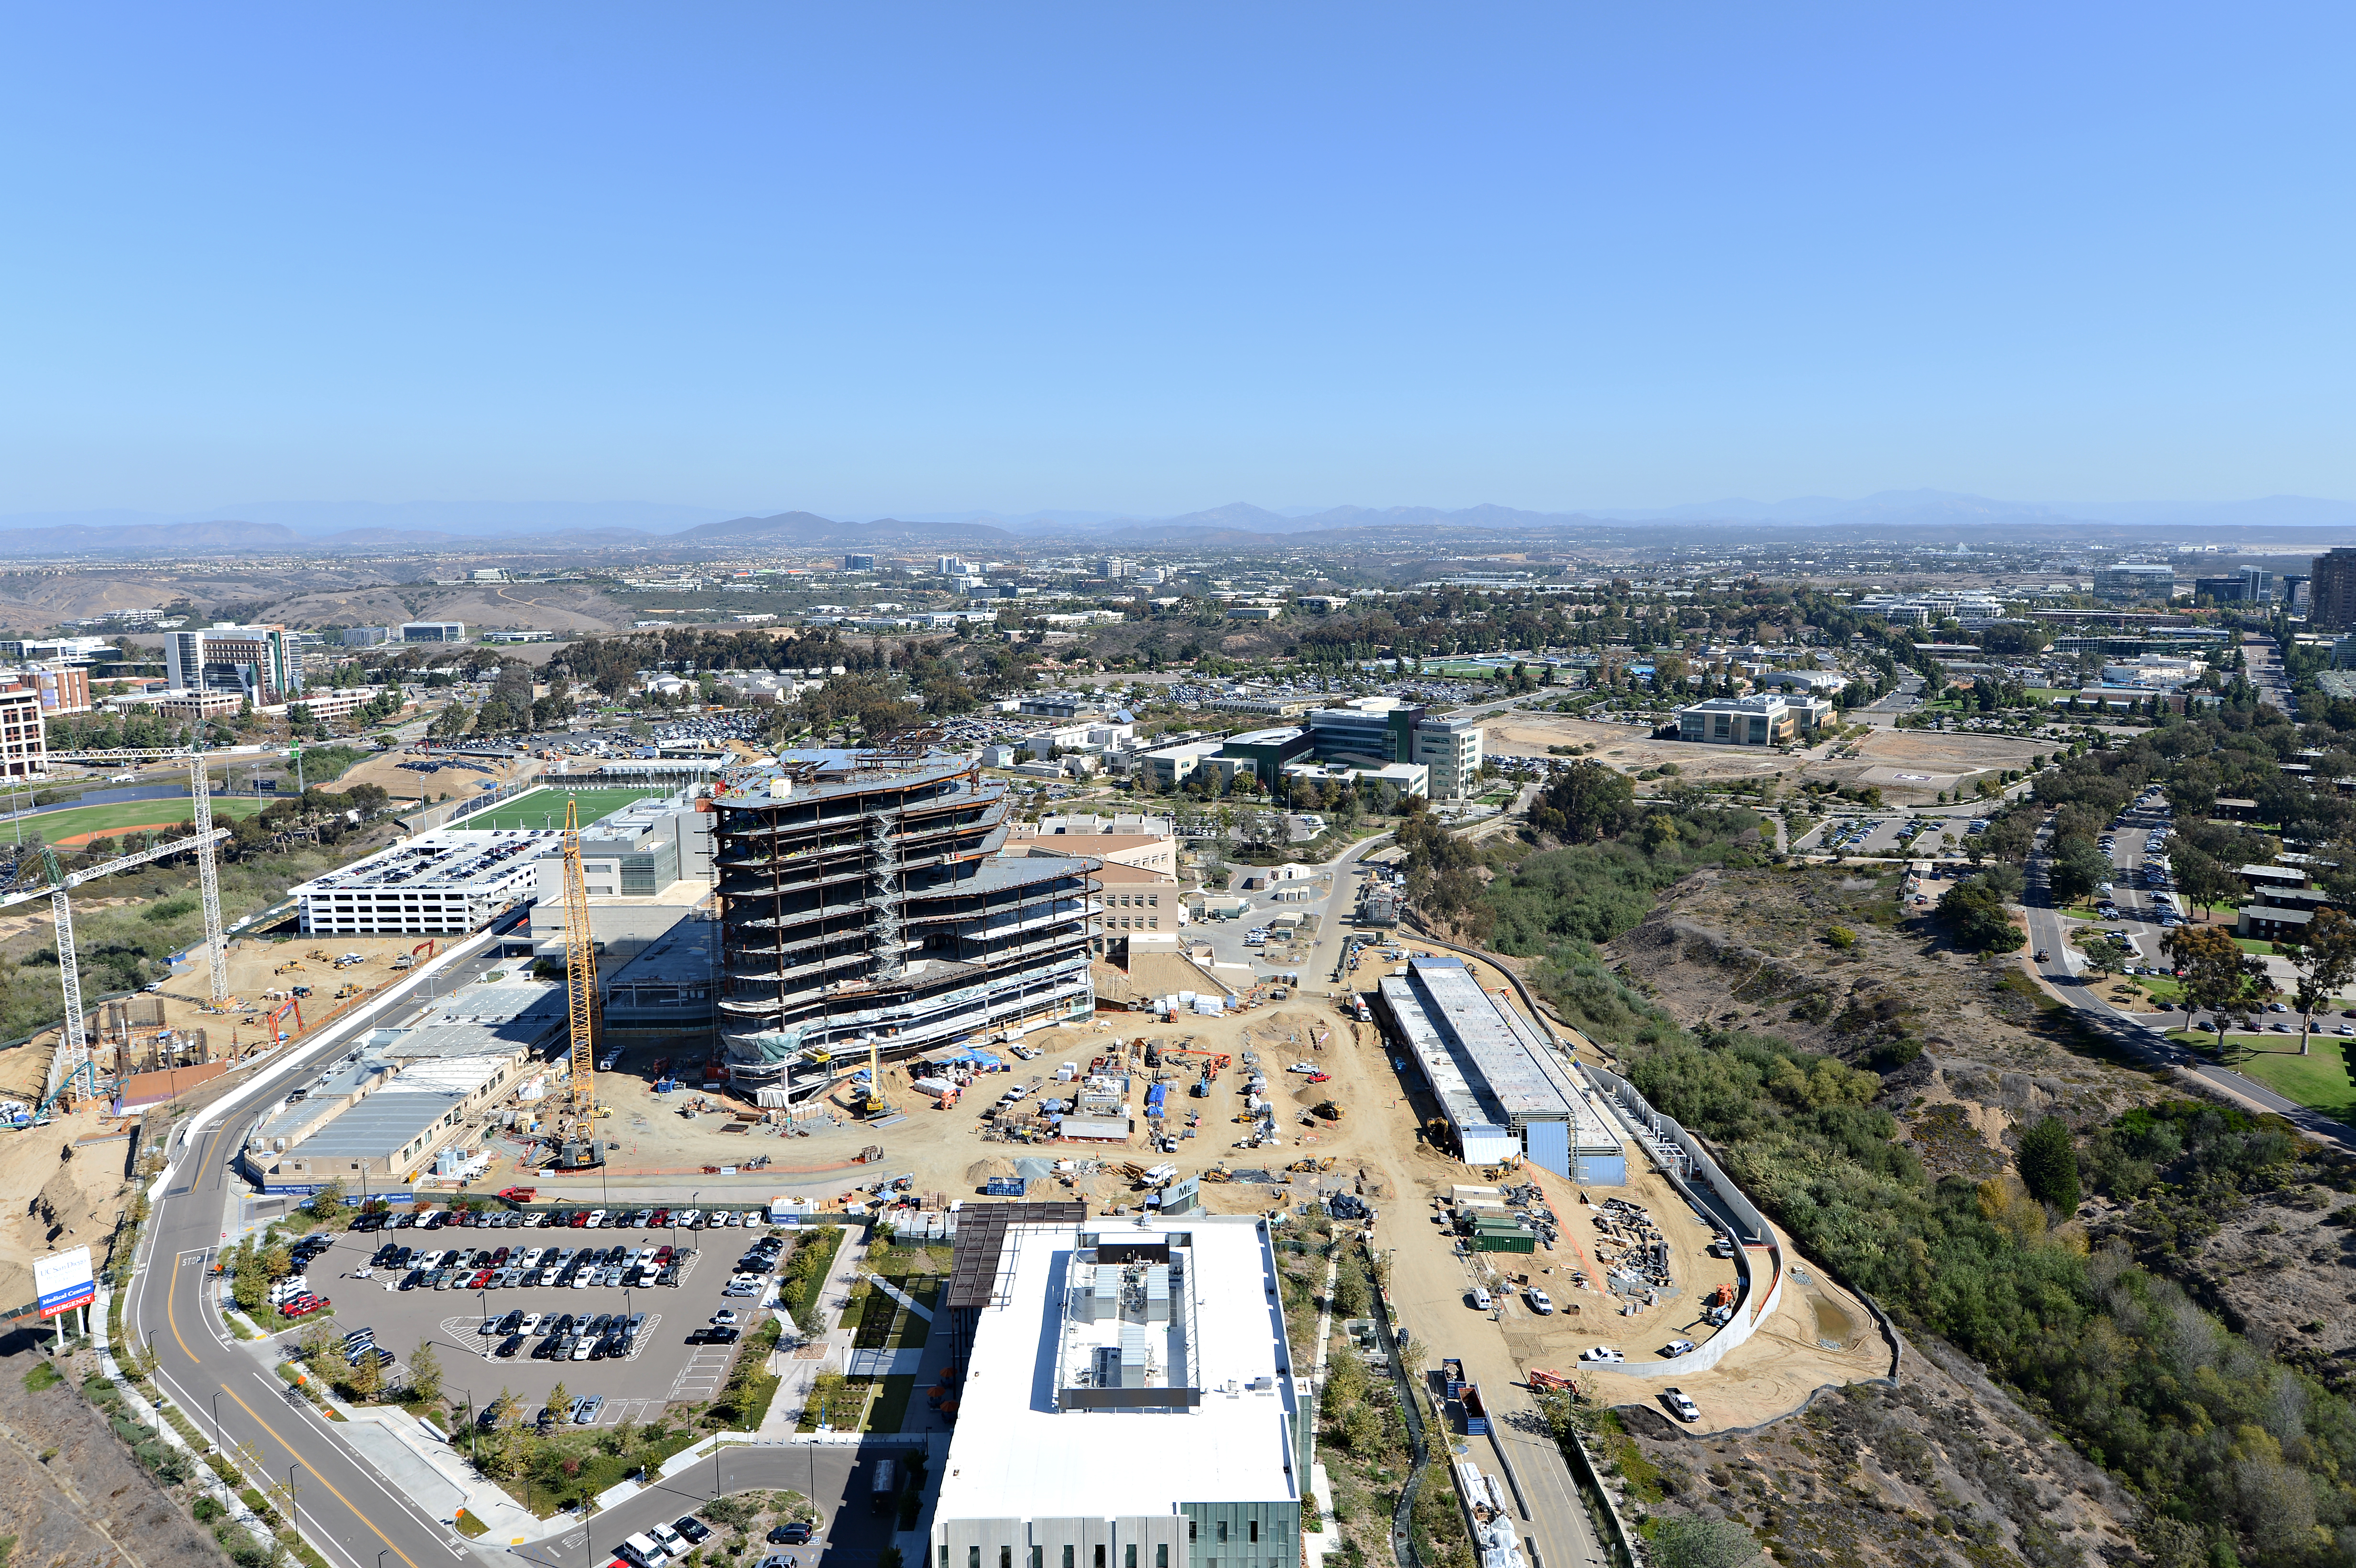 UC San Diego Jacobs Medical Center